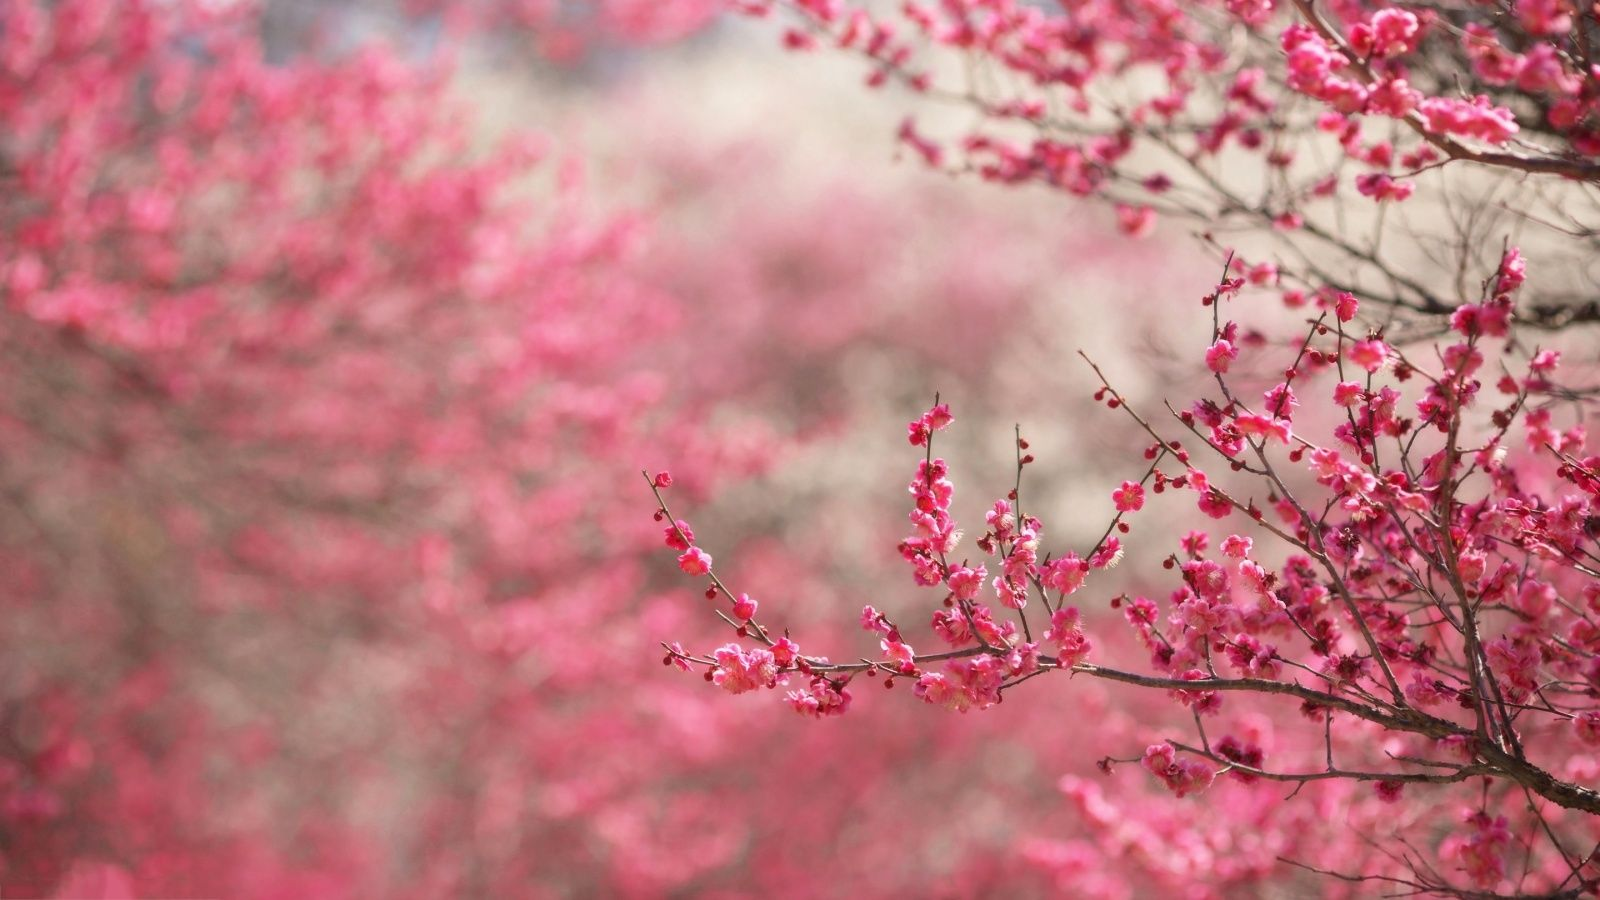 stocks at Cherry Blossoms Wallpapers group